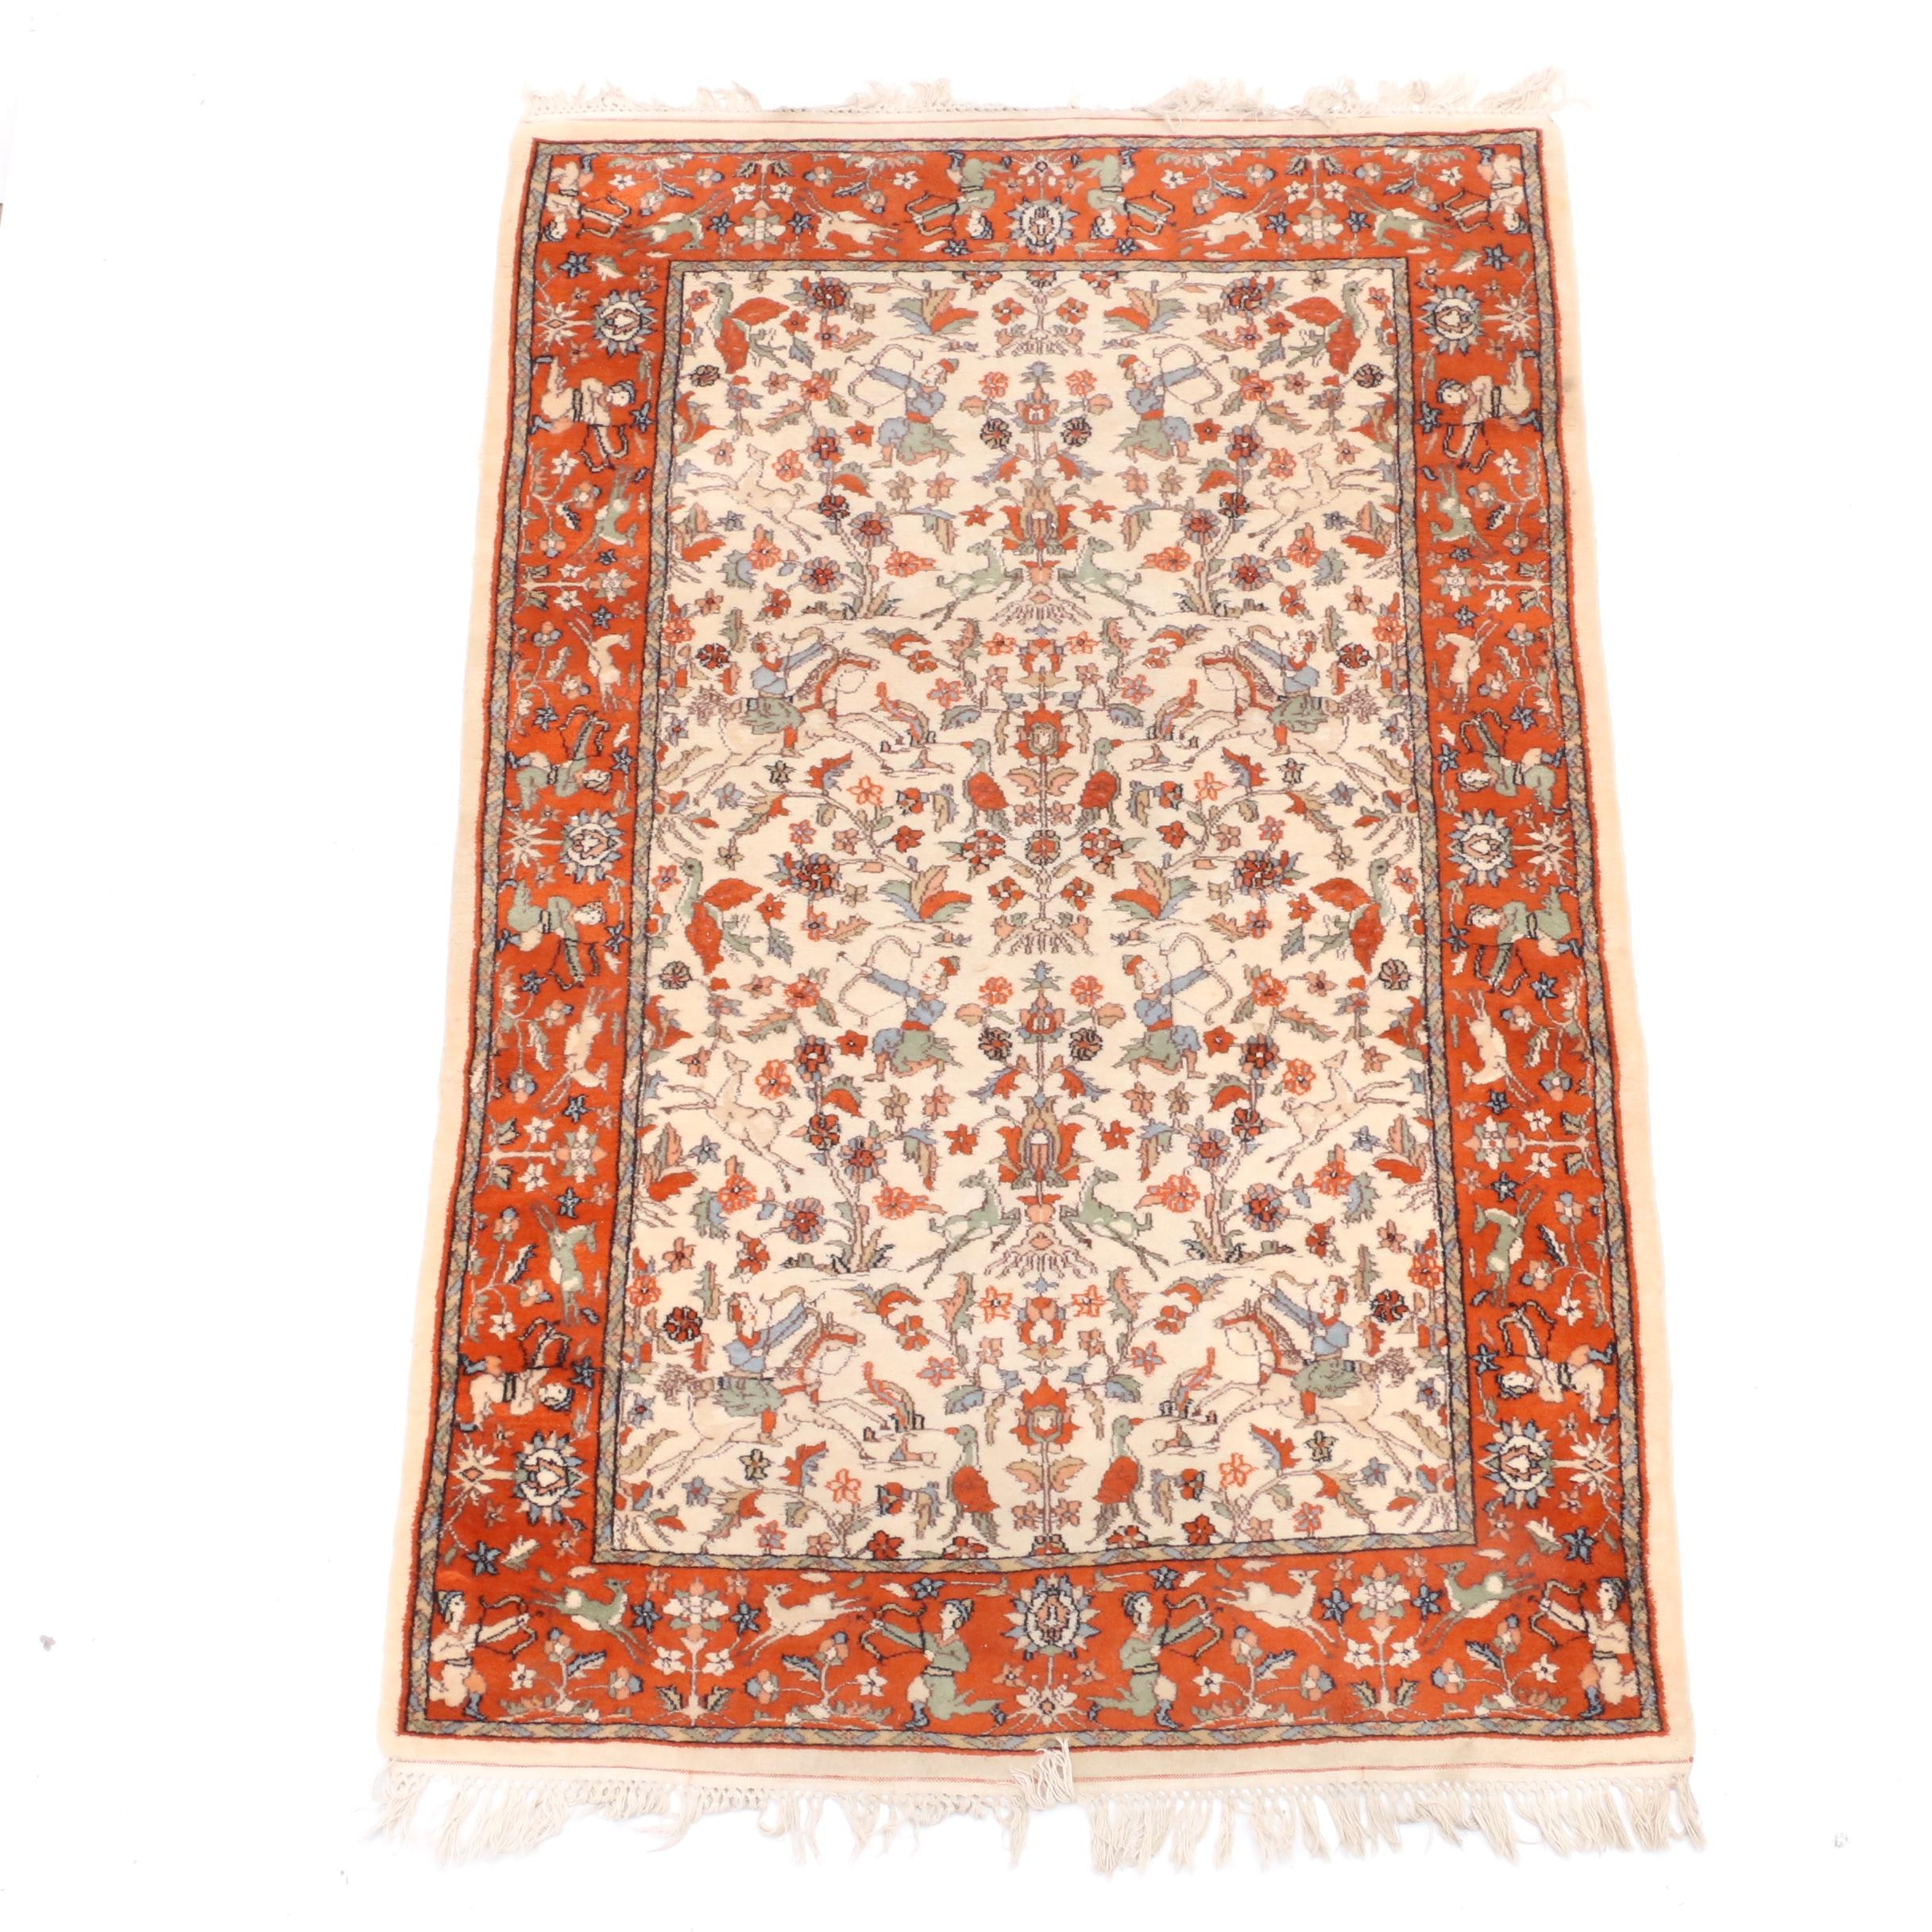 Hand-Knotted Indo-Persian Hunting Area Rug